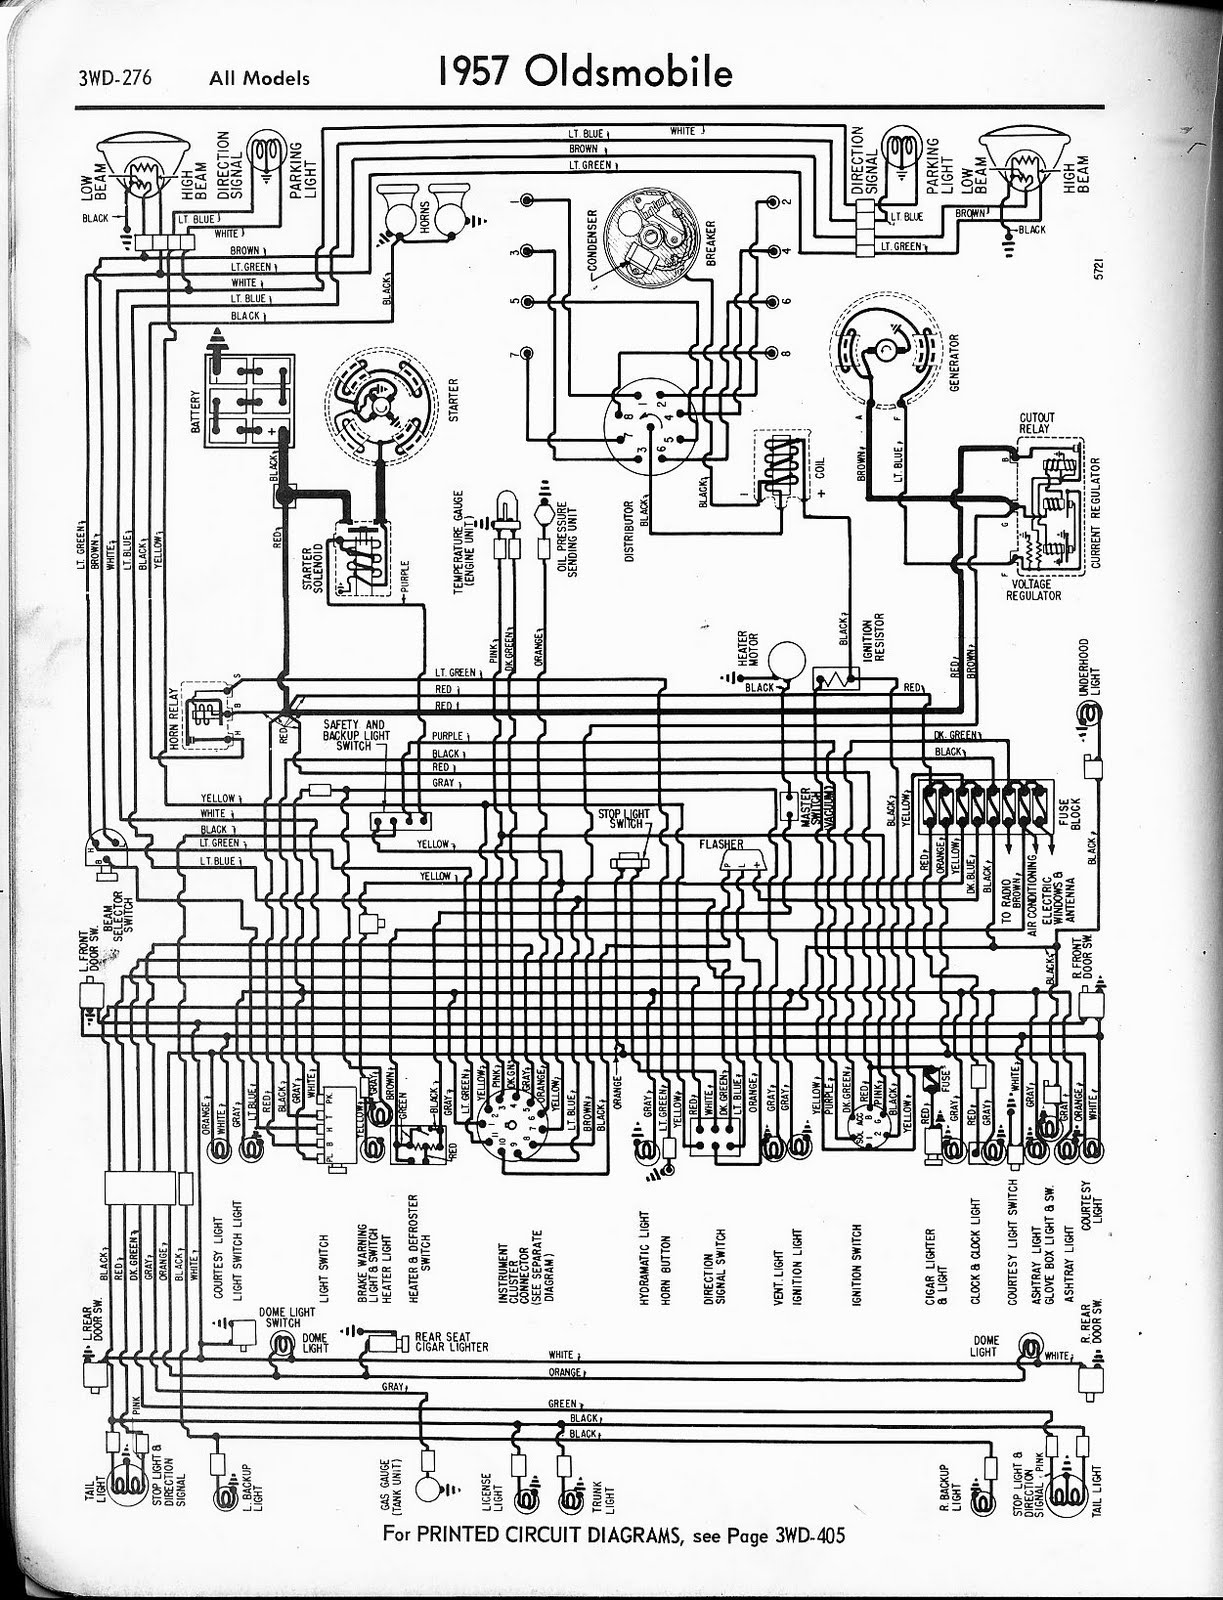 1957 dodge truck wiring diagram 1957 chevrolet truck wiring schematic